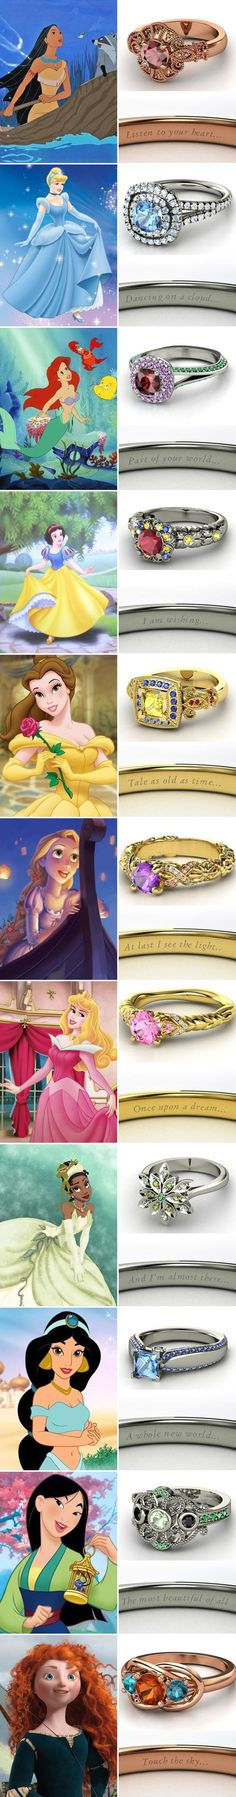 Can I have Ariel's ring? Kthanks! Disney princess wedding rings and more ideas for diehard #DisneyPrincess fans!